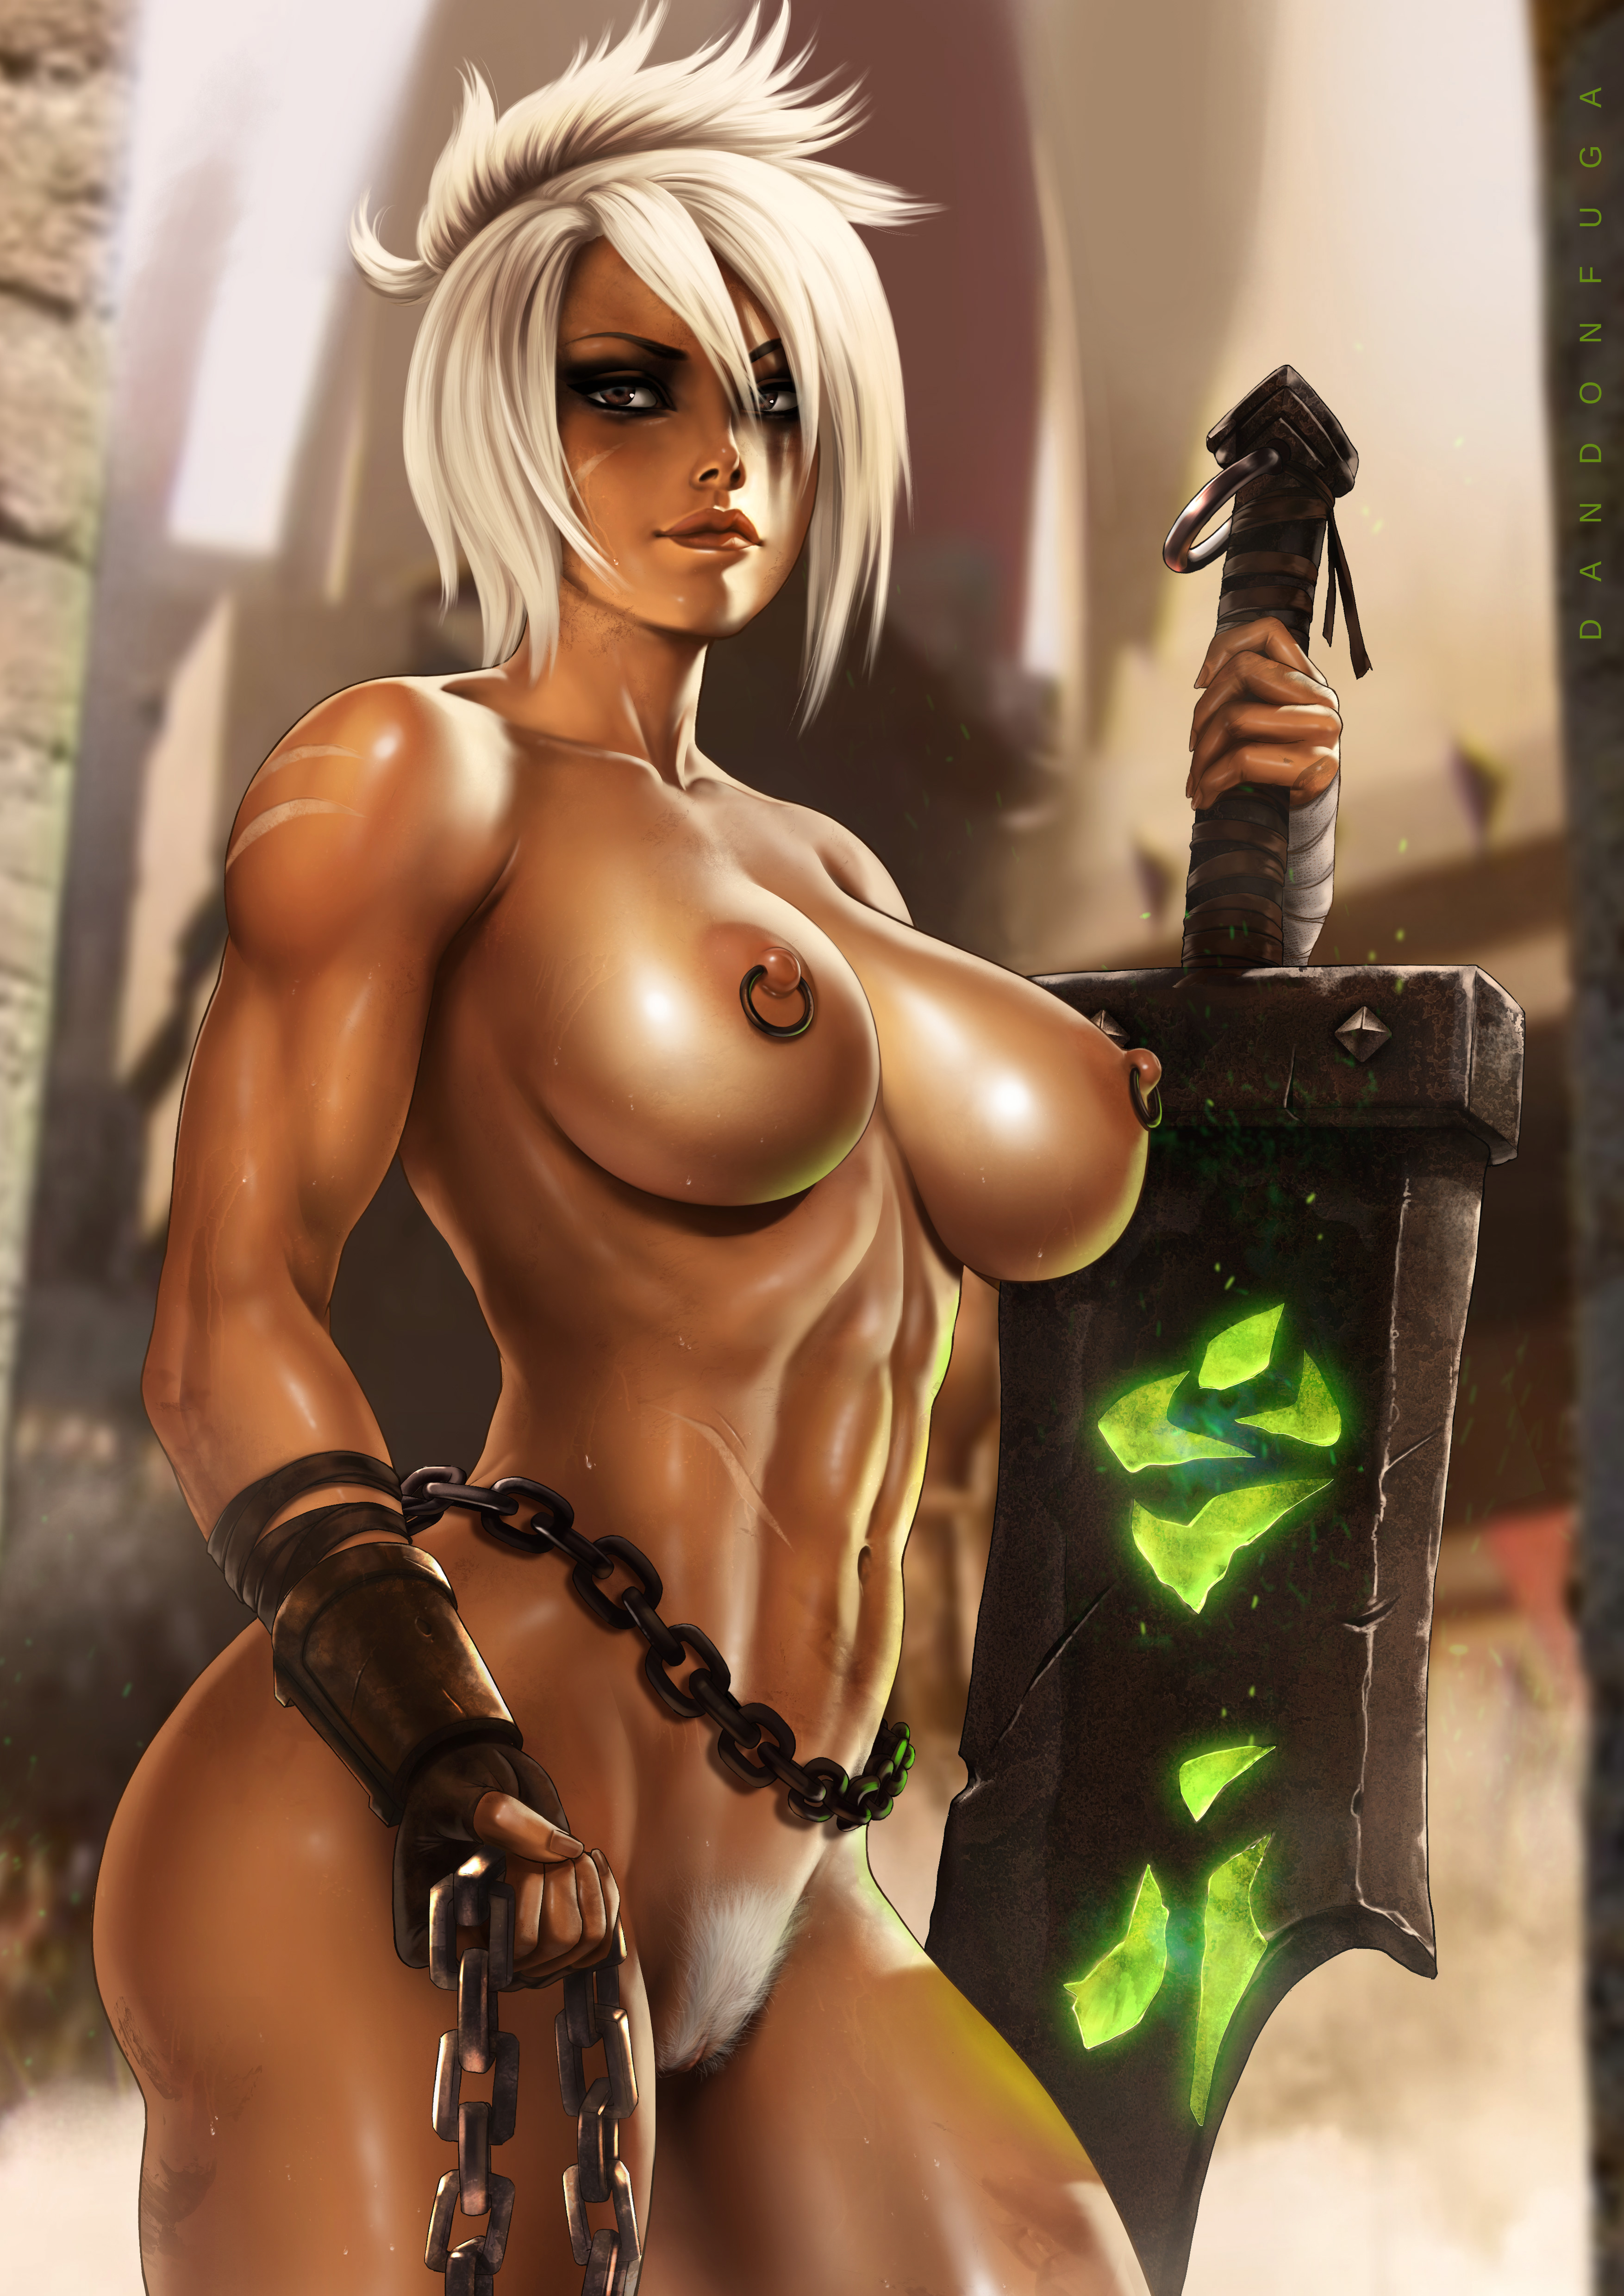 3005437 - Dandon_Fuga League_of_Legends Riven